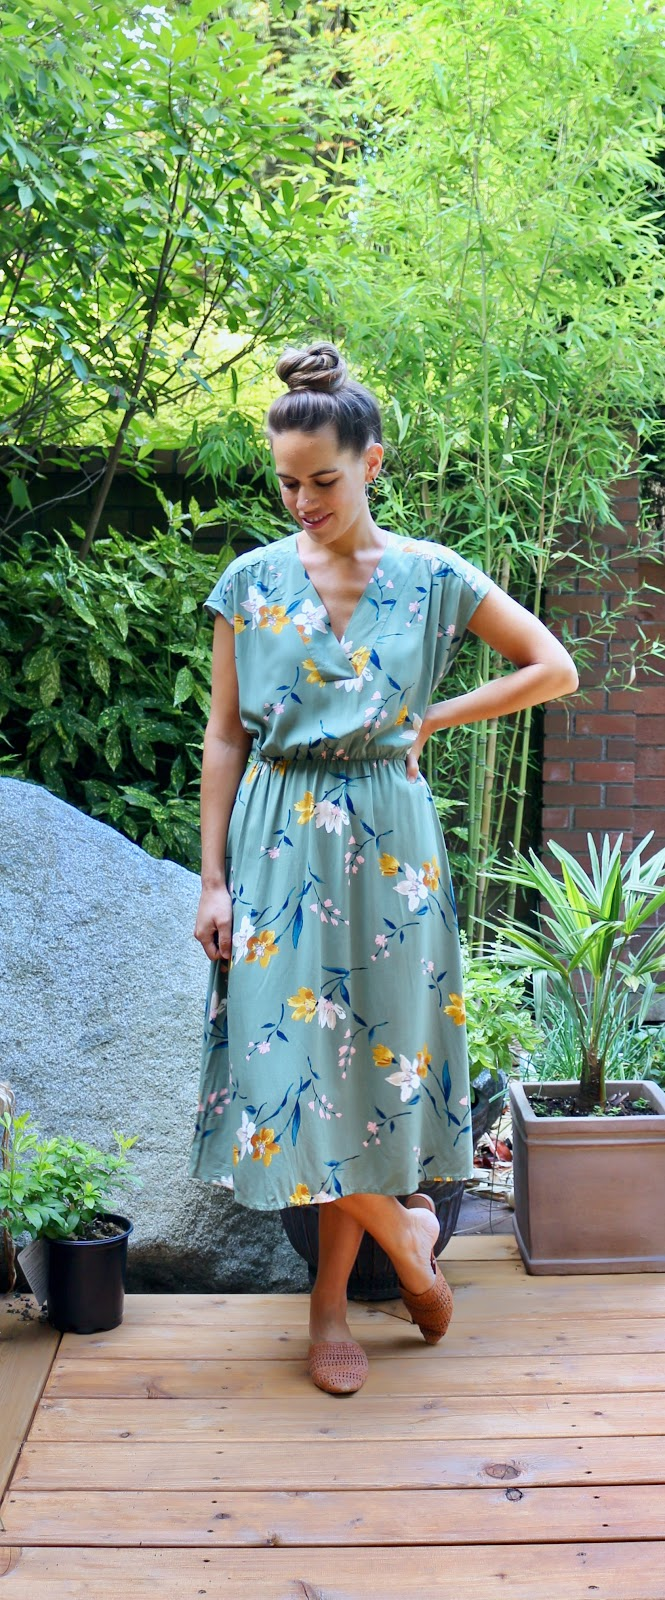 Jules in Flats - Floral Midi Dress (Business Casual Workwear on a Budget)